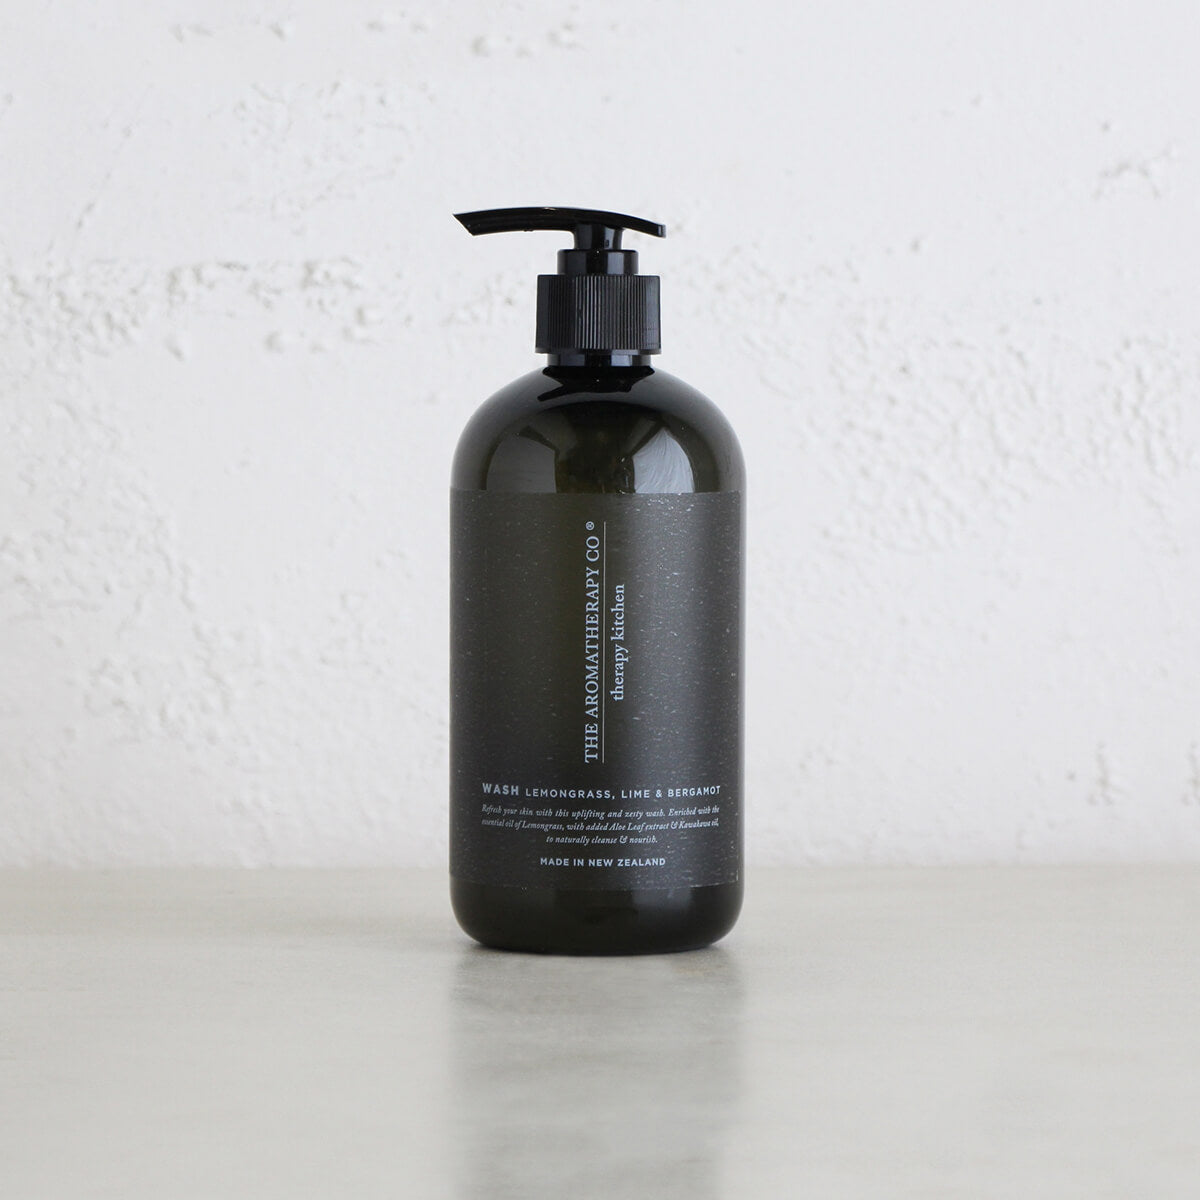 THERAPY KITCHEN HAND + BODY WASH   |  LEMONGRASS, LIME + BERGAMOT